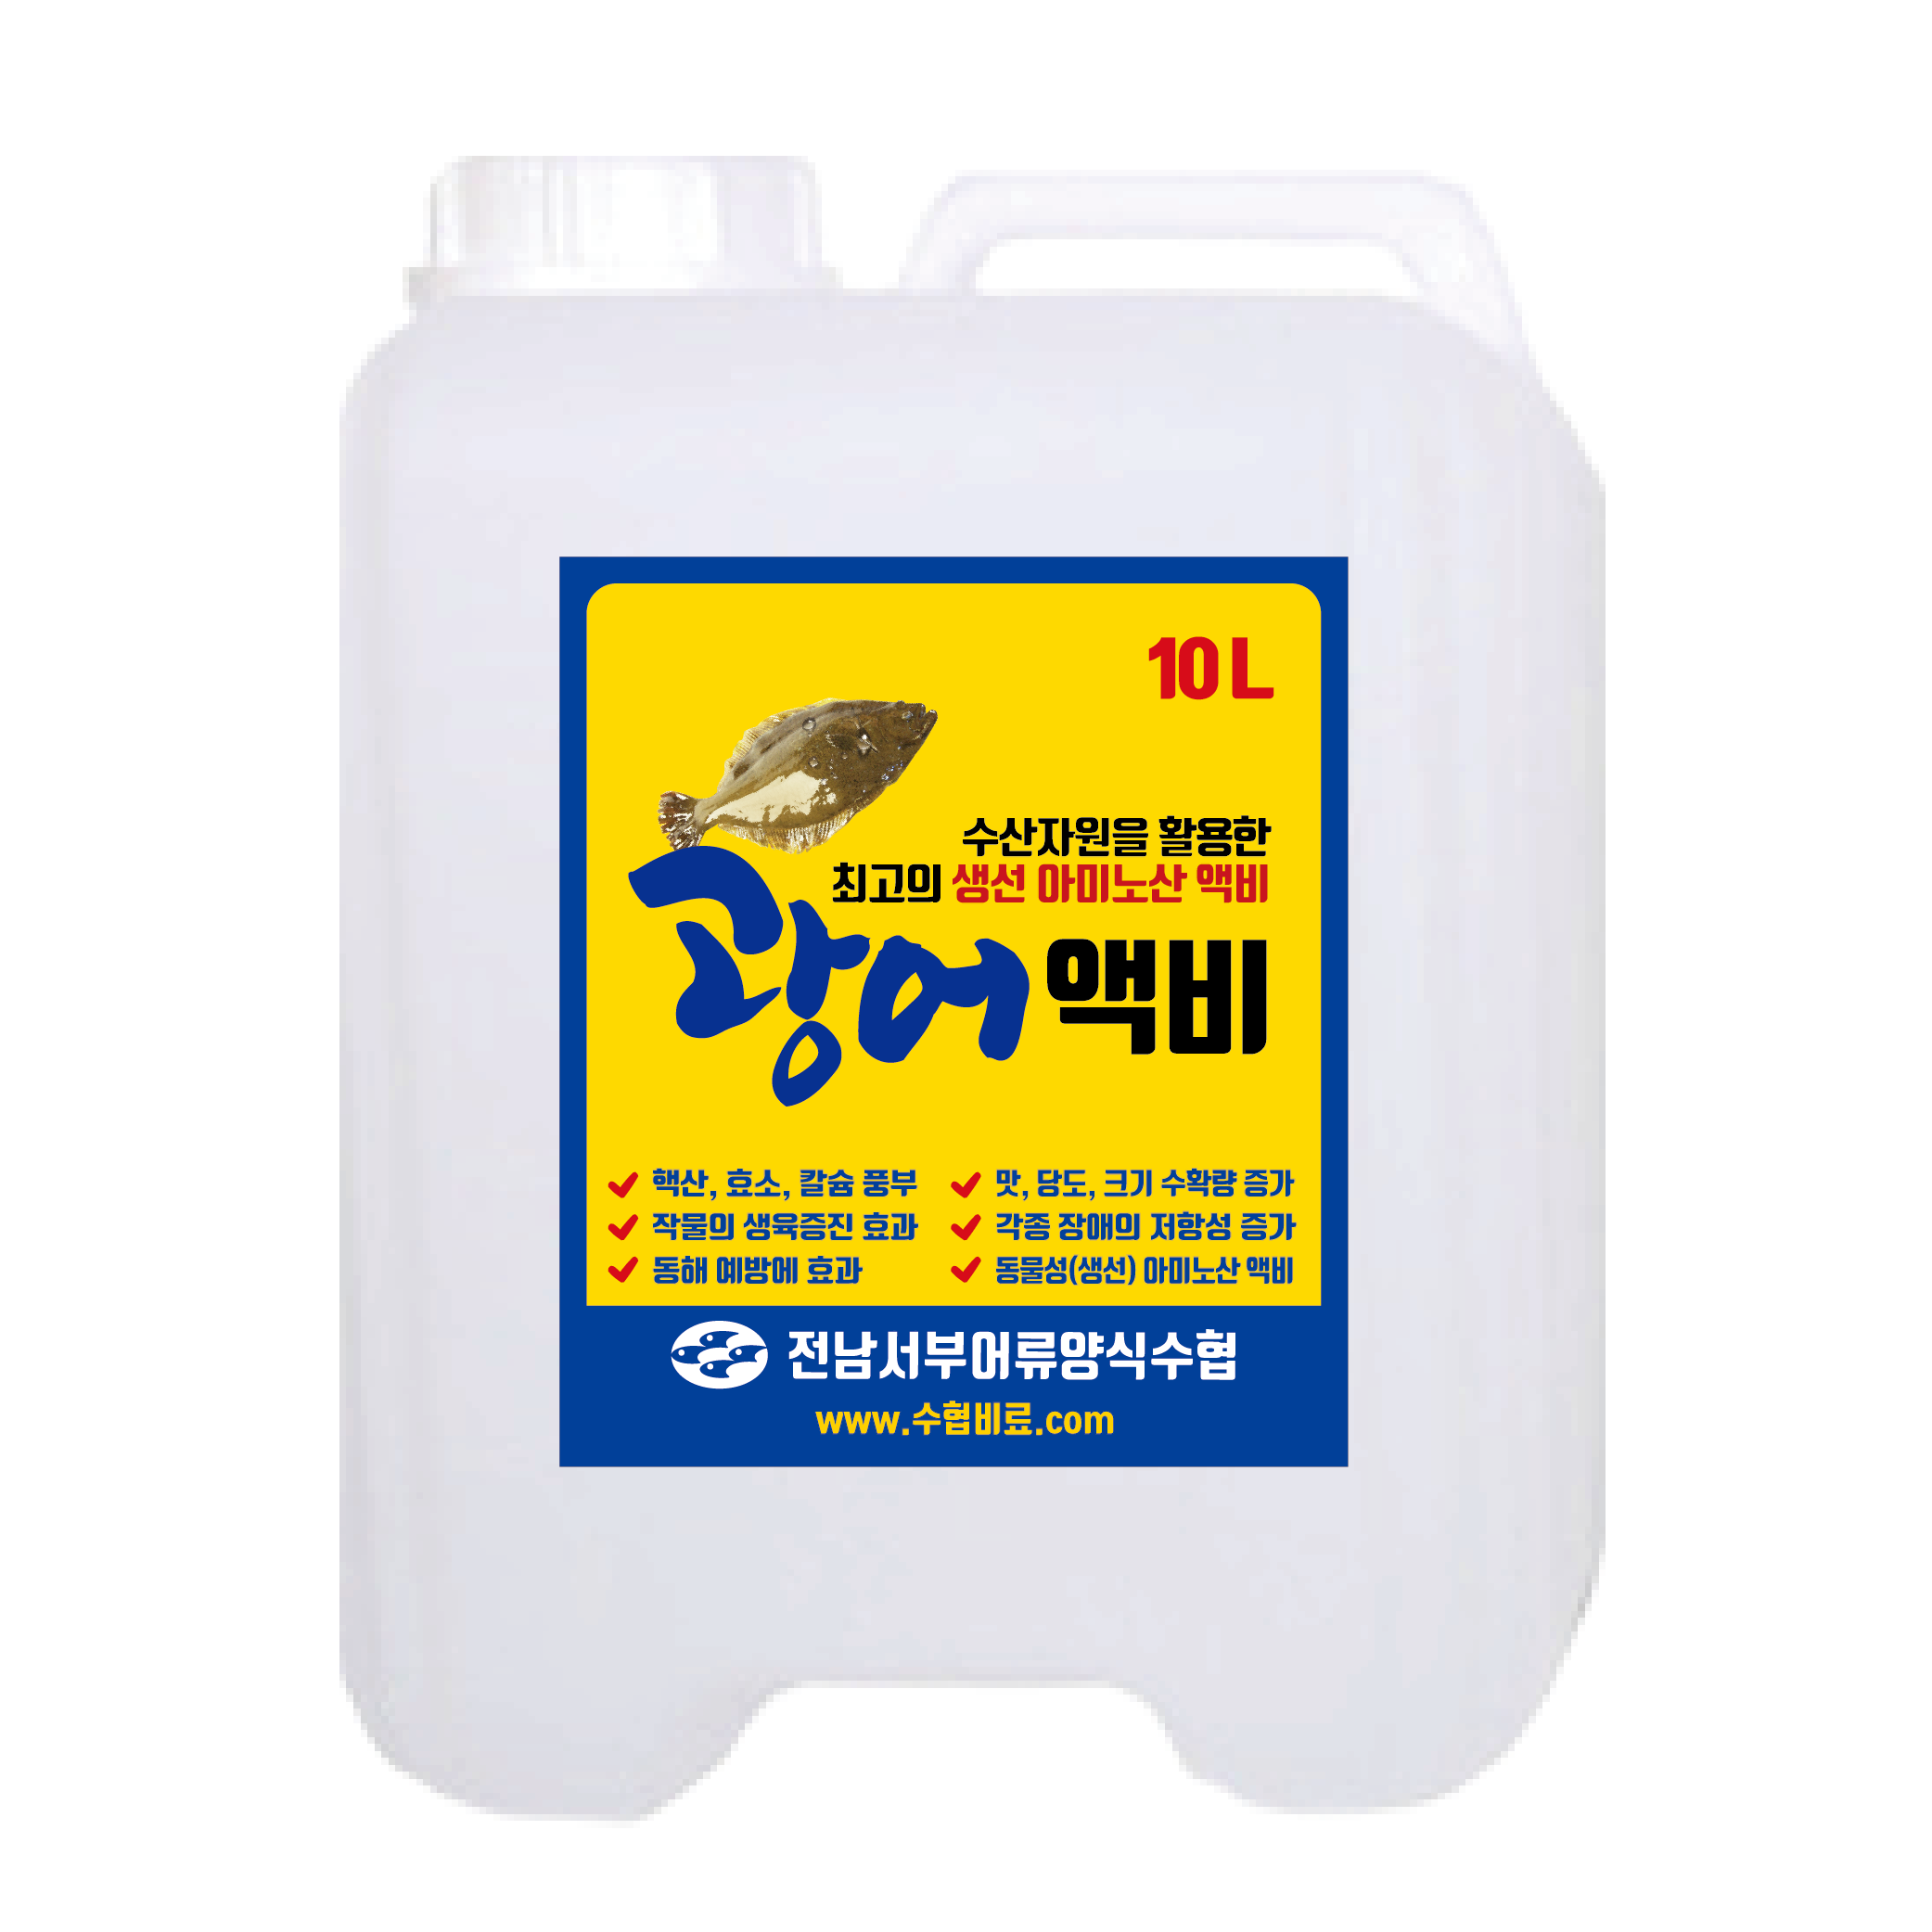 http://suhyup2019.handpr.kr/bs/se2/imgup/1574650309a222222.png